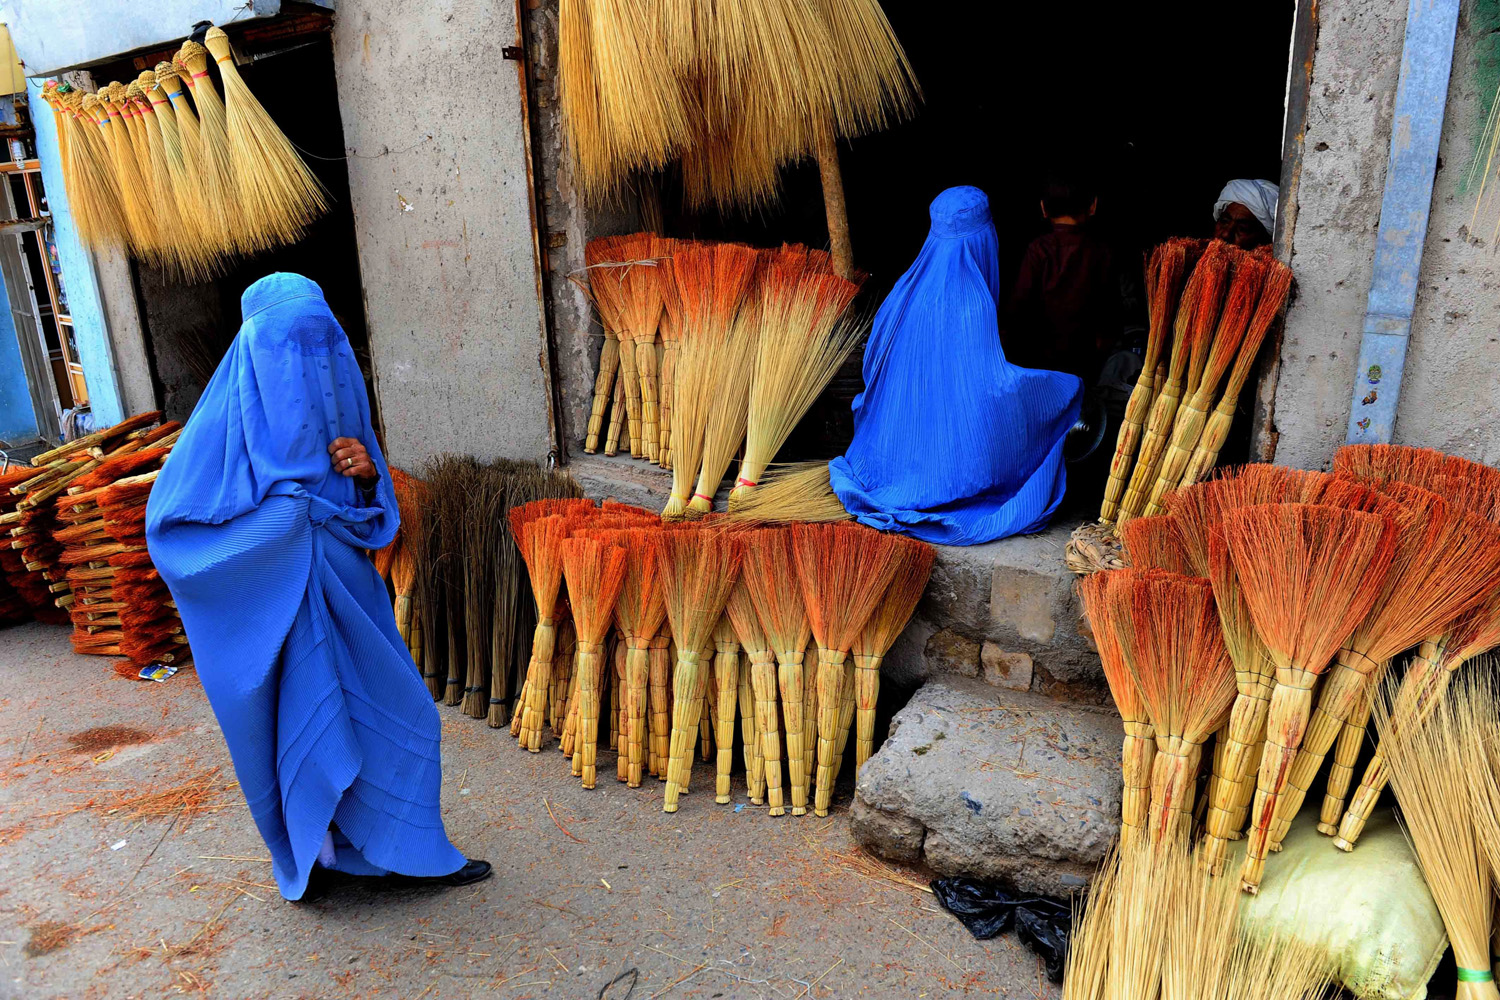 Apr. 9, 2014.                               Afghan shoppers look for brooms at a roadside shop in Herat. Leading candidates in Afghanistan's presidential election voiced concerns that voting was tainted by fraud after millions defied Taliban threats and turned out to choose a successor to President Hamid Karzai.